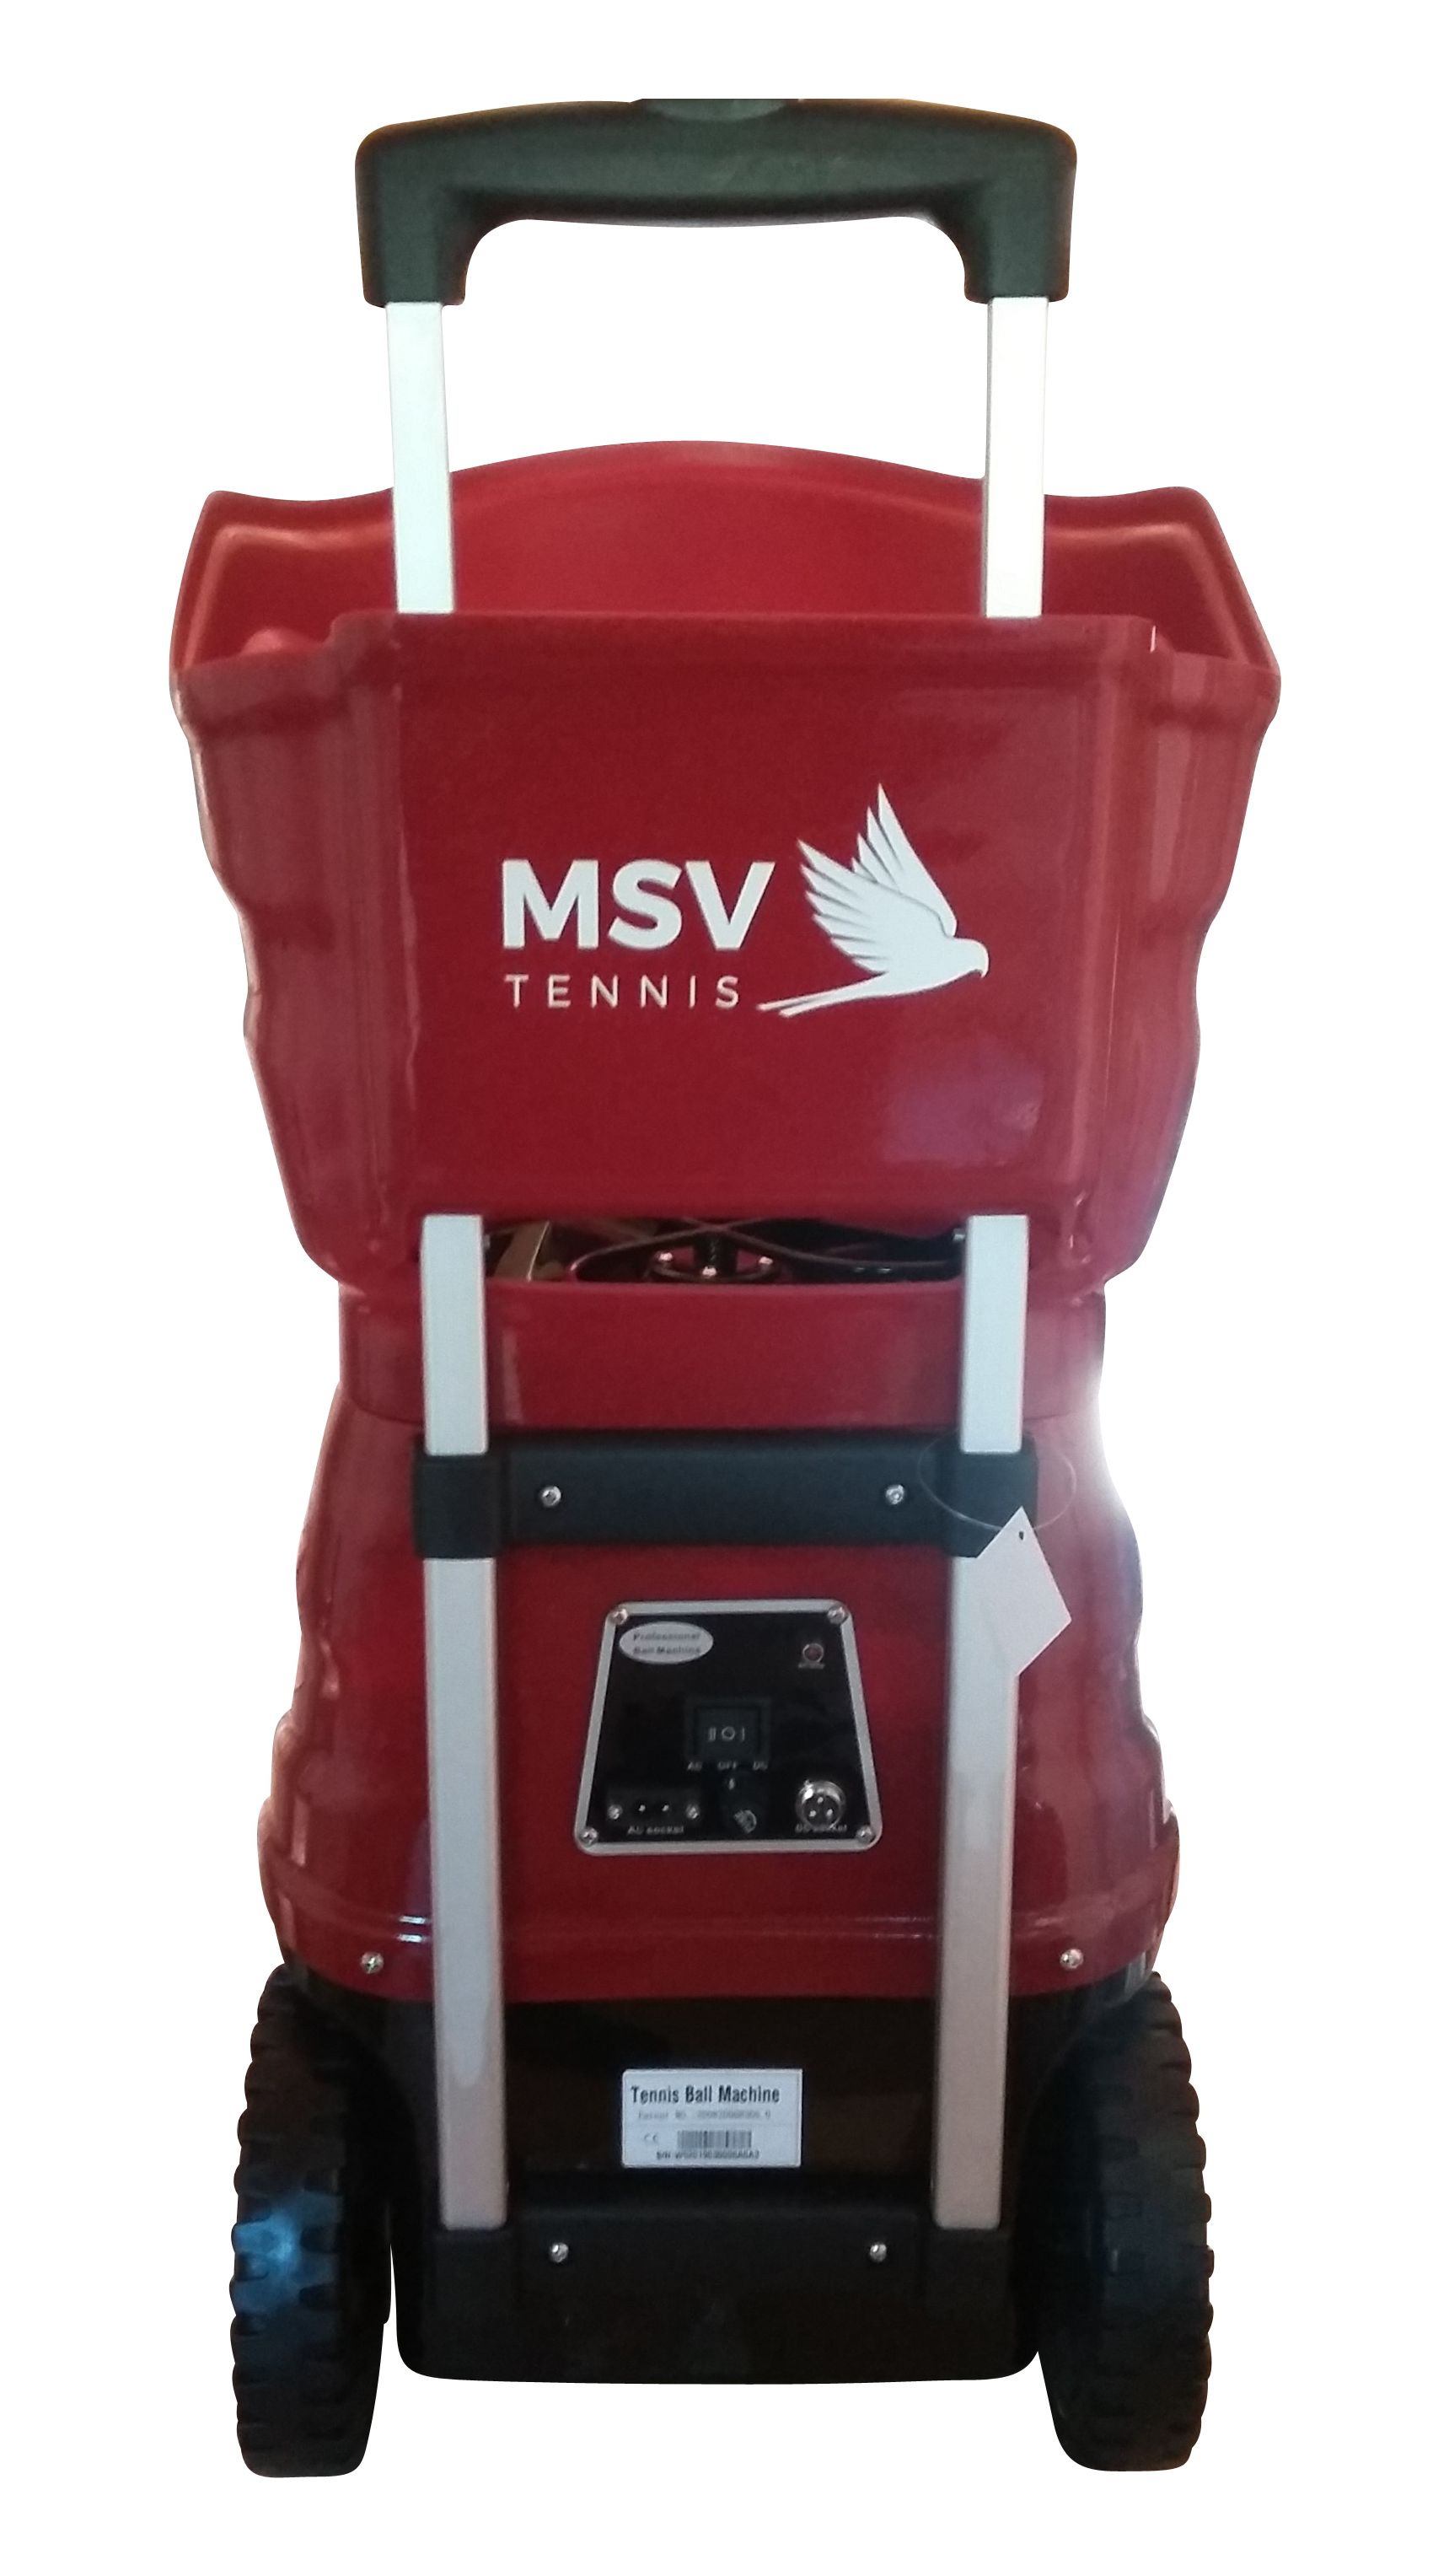 Tennis Ball Machine MSV DirectShot Red, Remote, Smart Charger, Lithium Battery, DC/AC